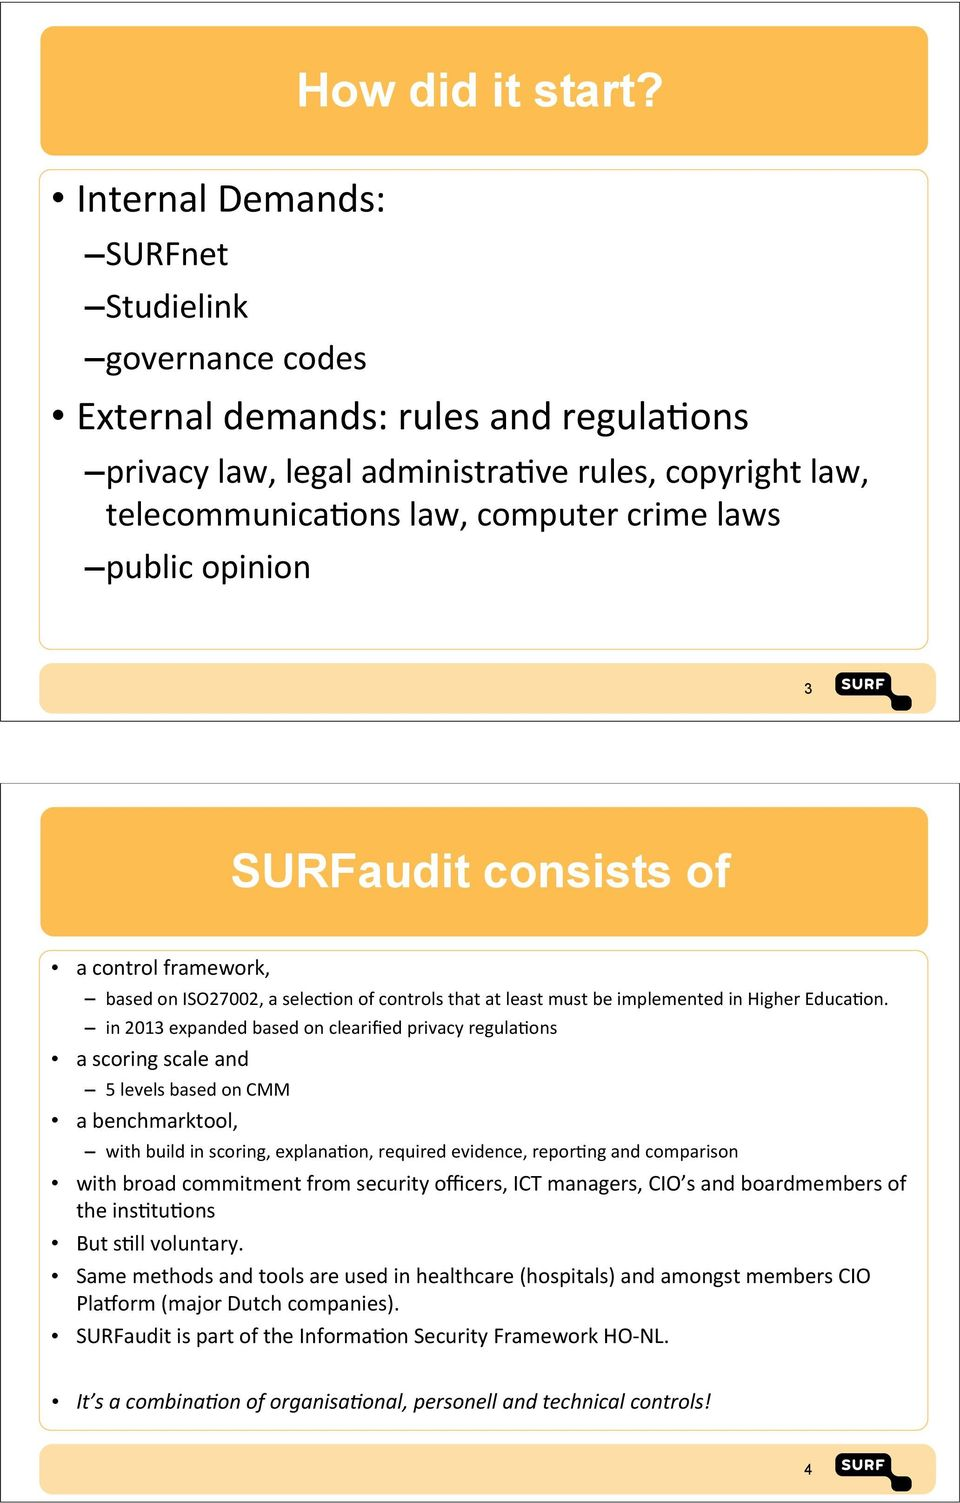 public&opinion 3 SURFaudit consists of a&control&framework, based&on&iso27002,&a&selec@on&of&controls&that&at&least&must&be&implemented&in&higher&educa@on.